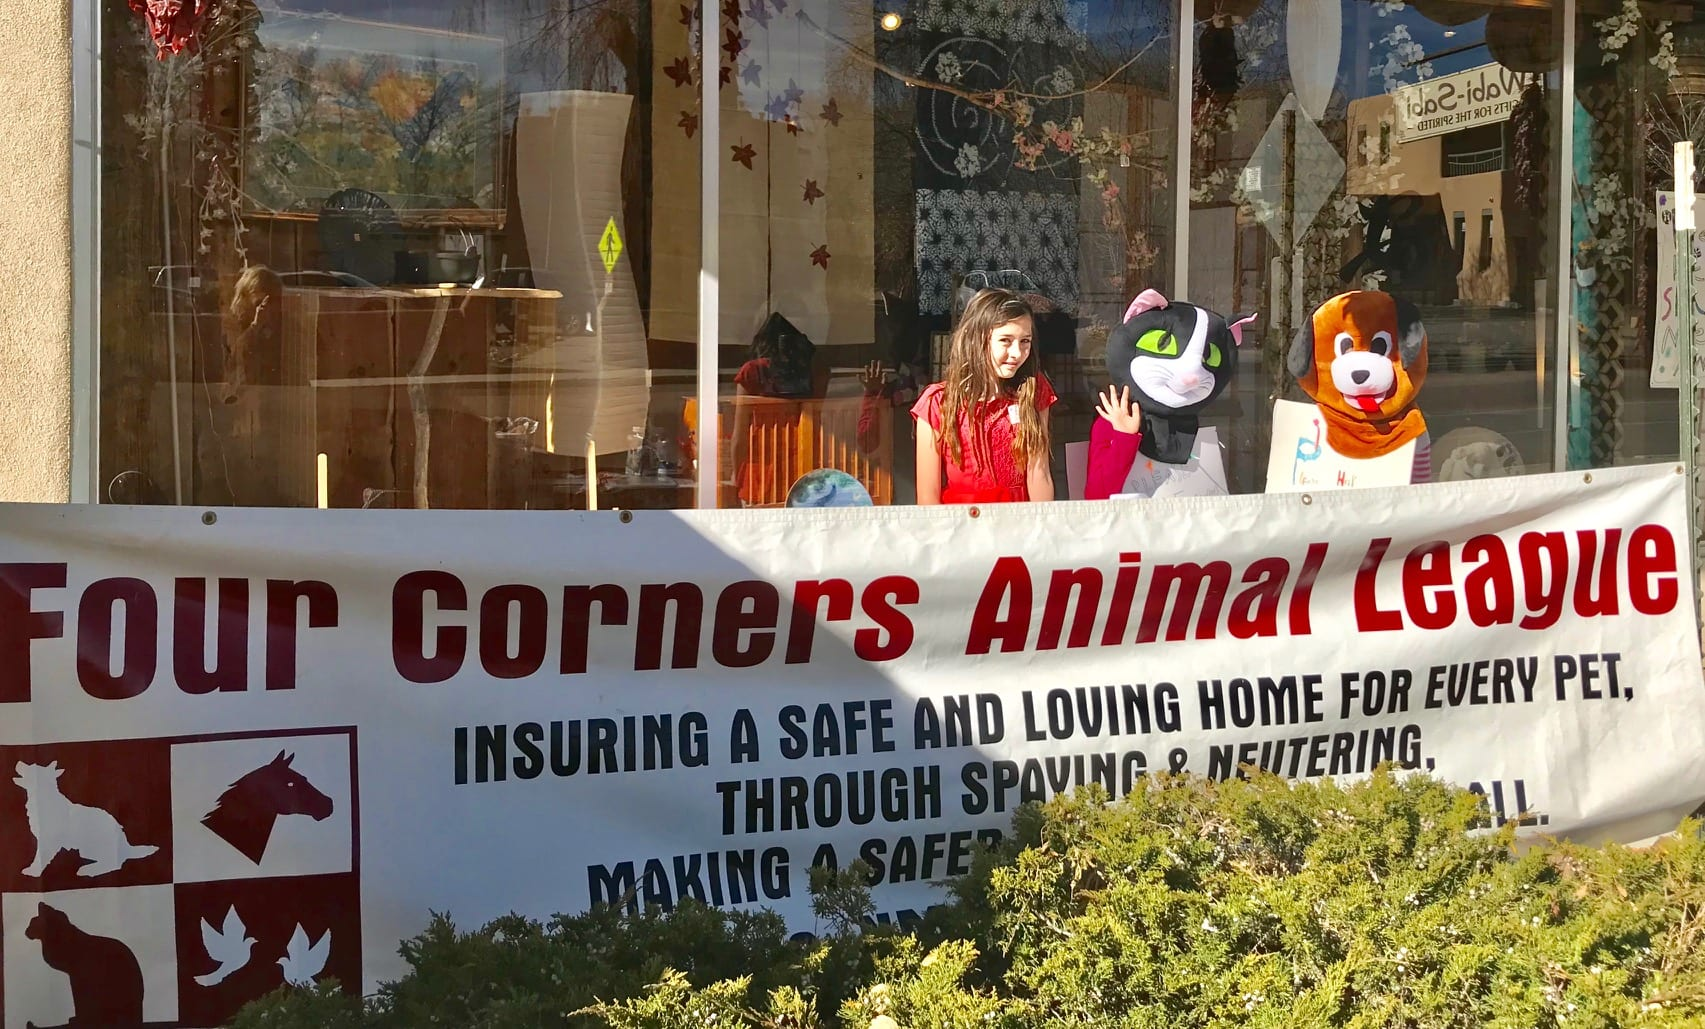 Four Corners Animal League